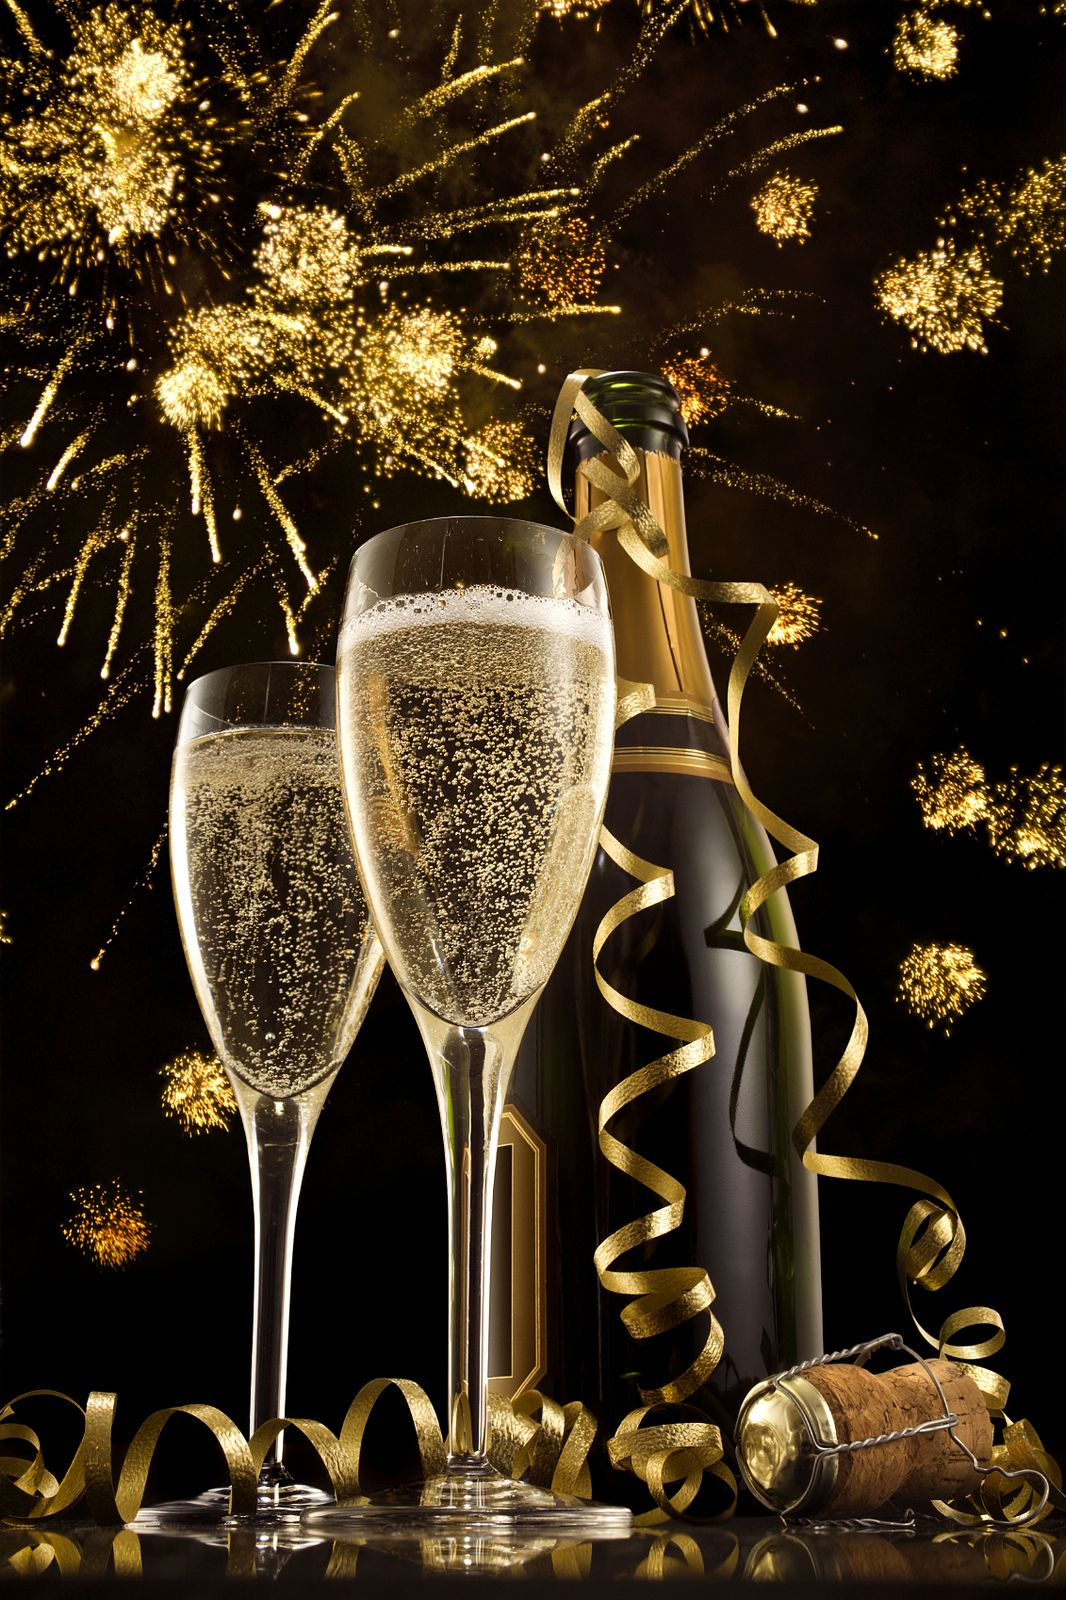 Champagne Happy new year gif, Happy new year images, New